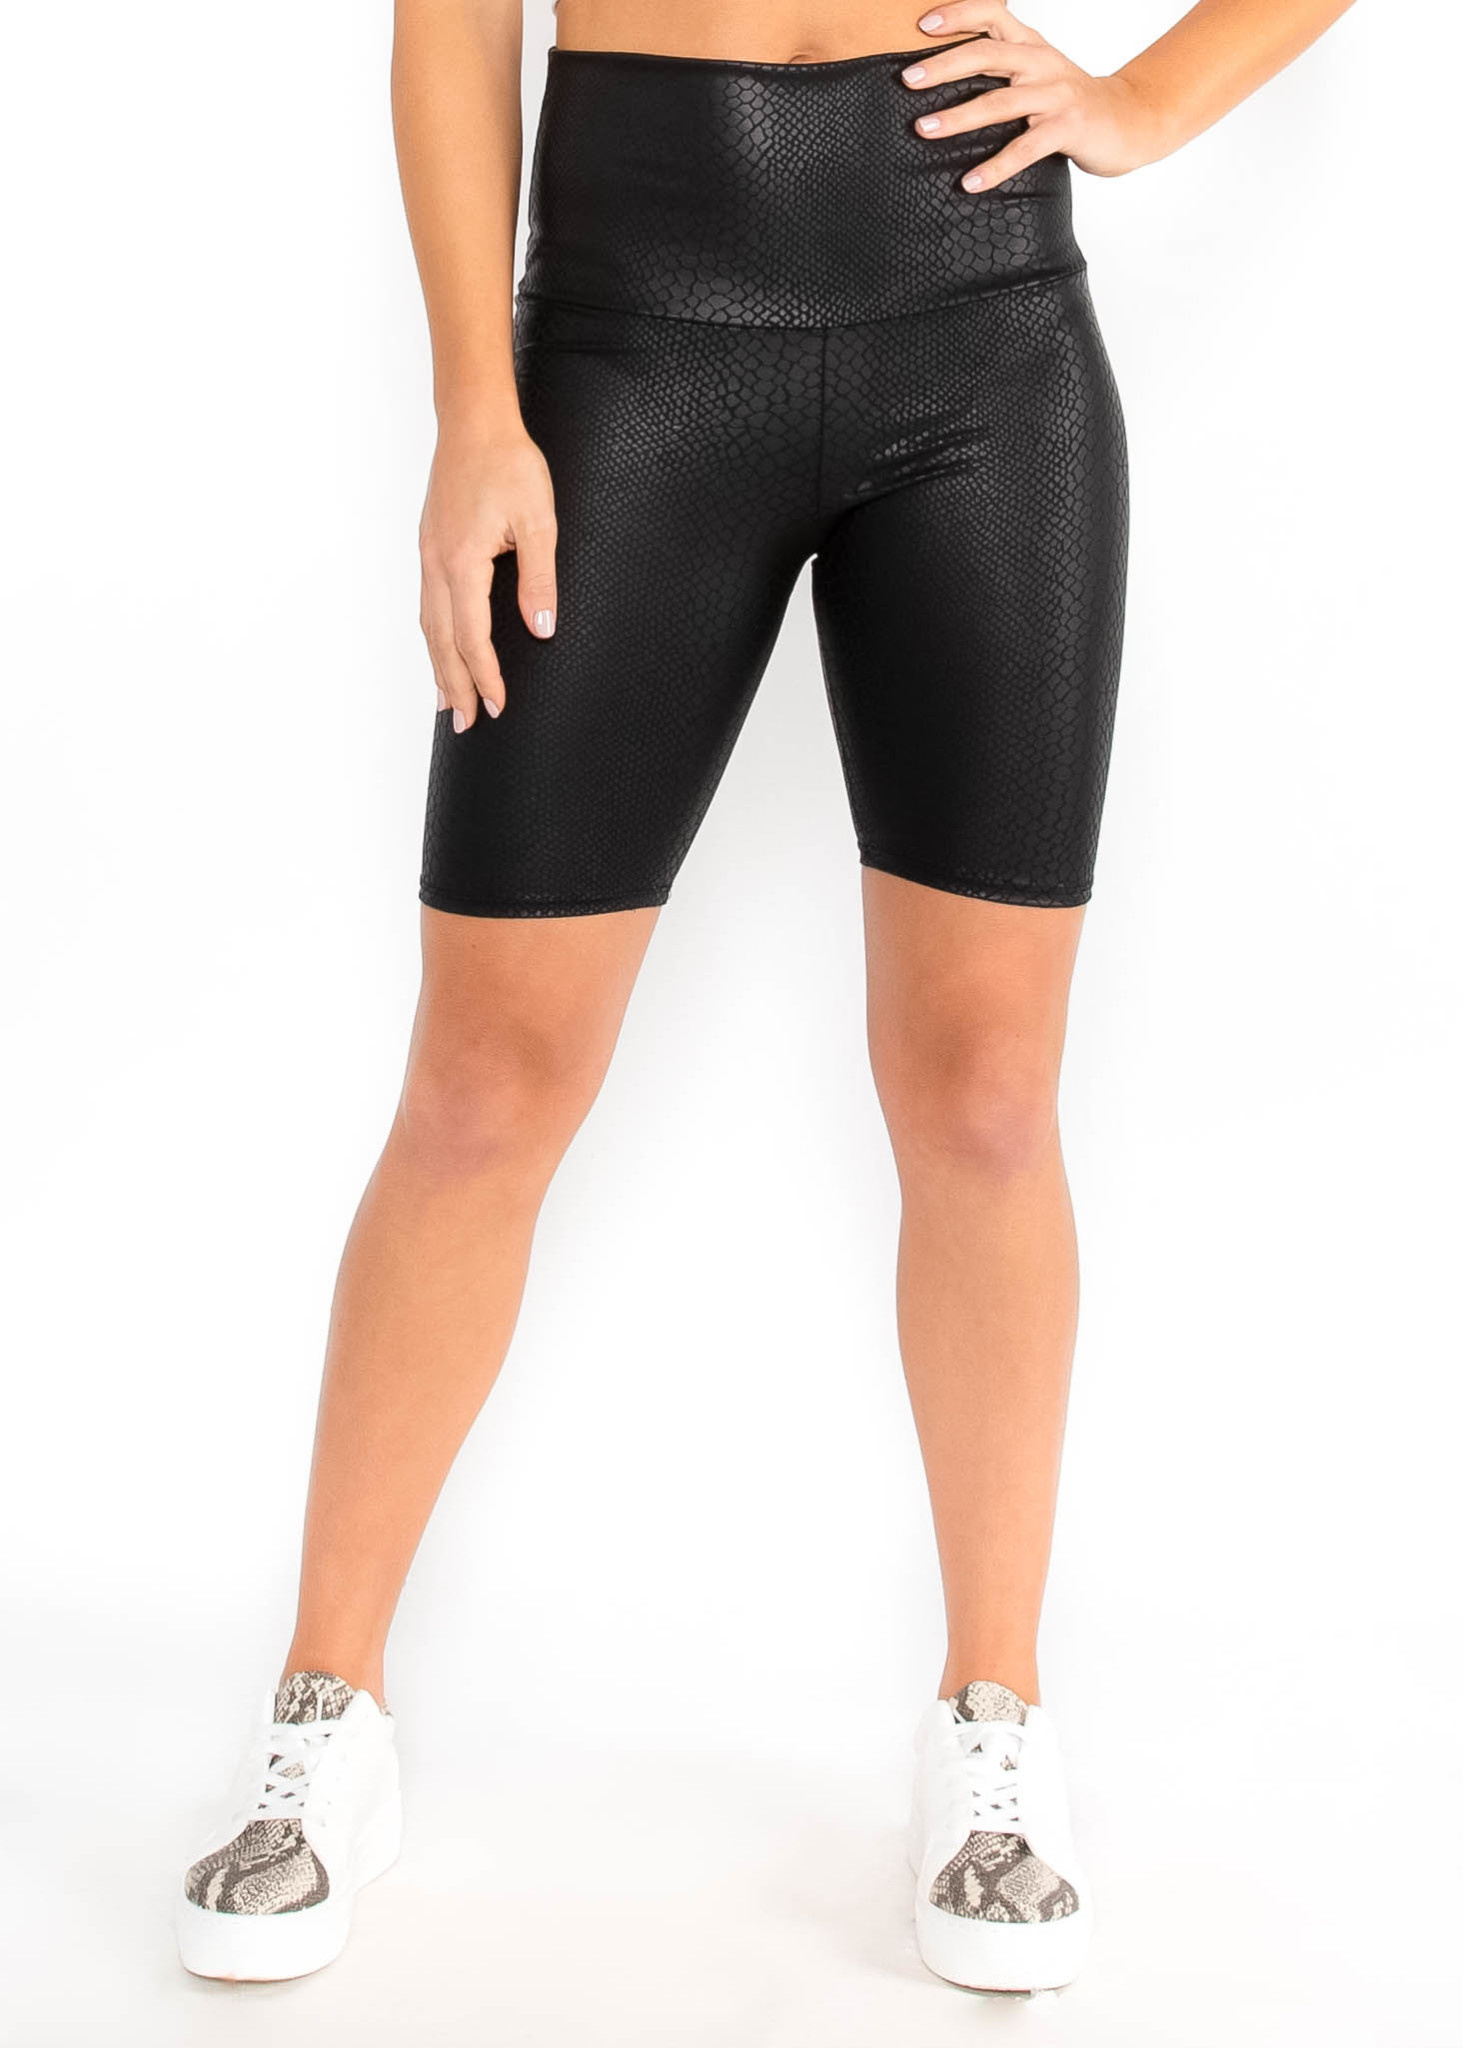 POWER PLAY BIKER SHORTS